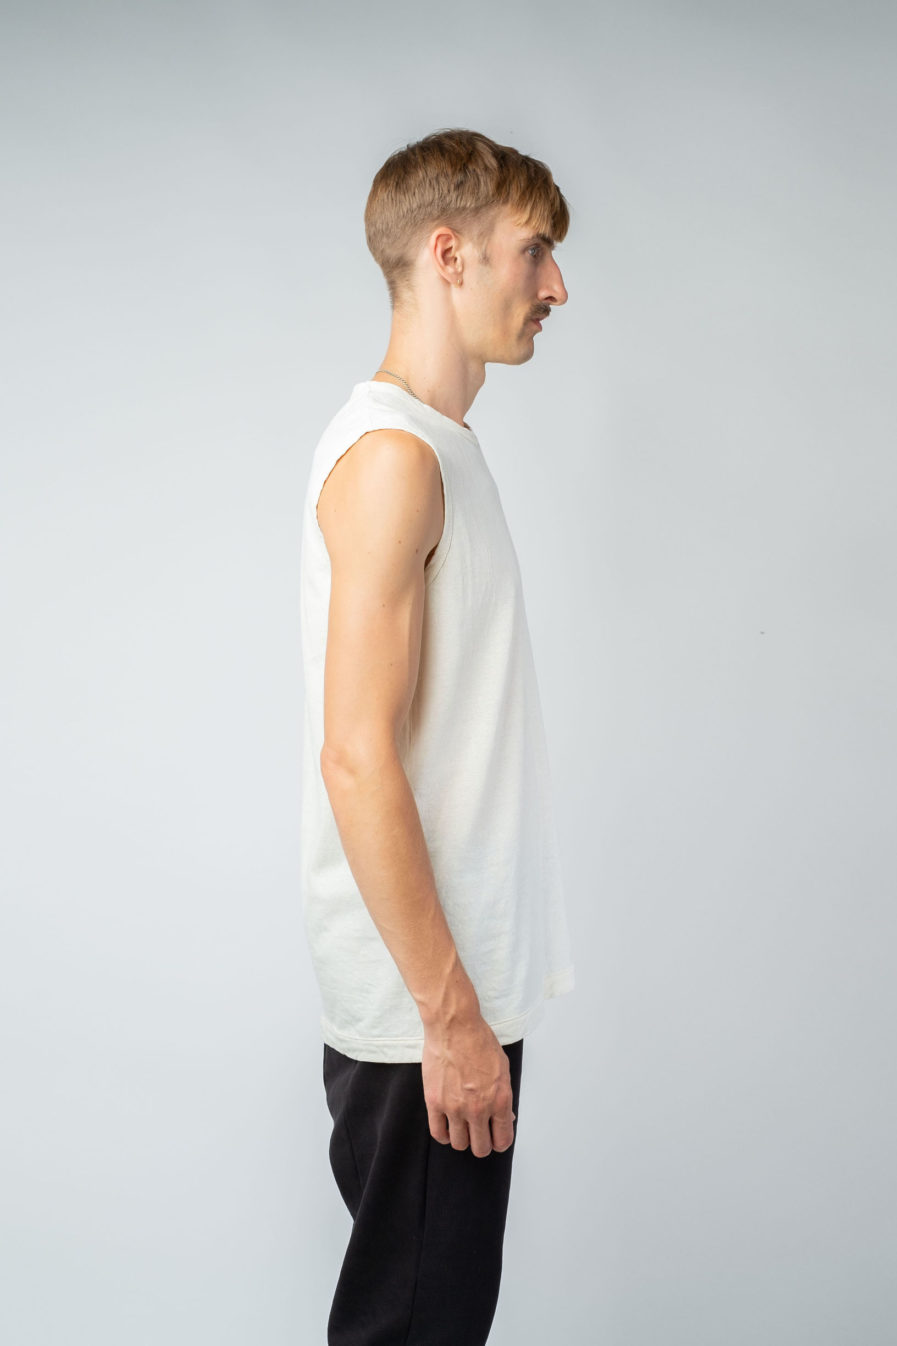 MAN unisex singlet tanktop hemp organic cotton VALENTIJN Blank canvas side